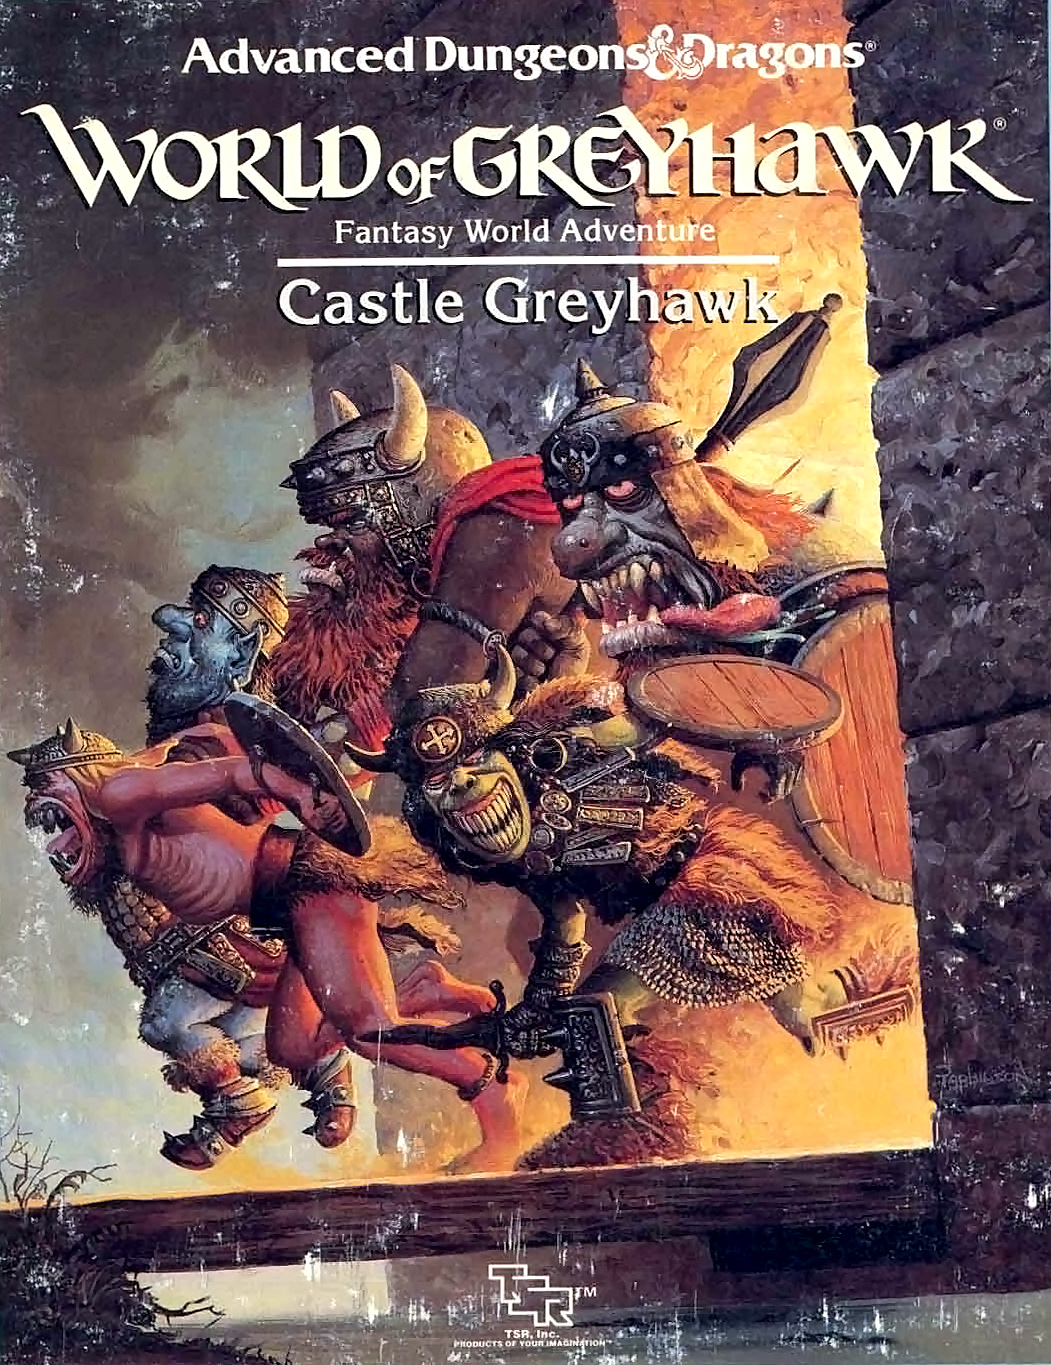 orc fire giant Giganti del fuoco, ogre, orchi e goblin in copertina - by Keith Parkinson Castle Greyhawk (1988-02) © Wizards of the Coast & Hasbro